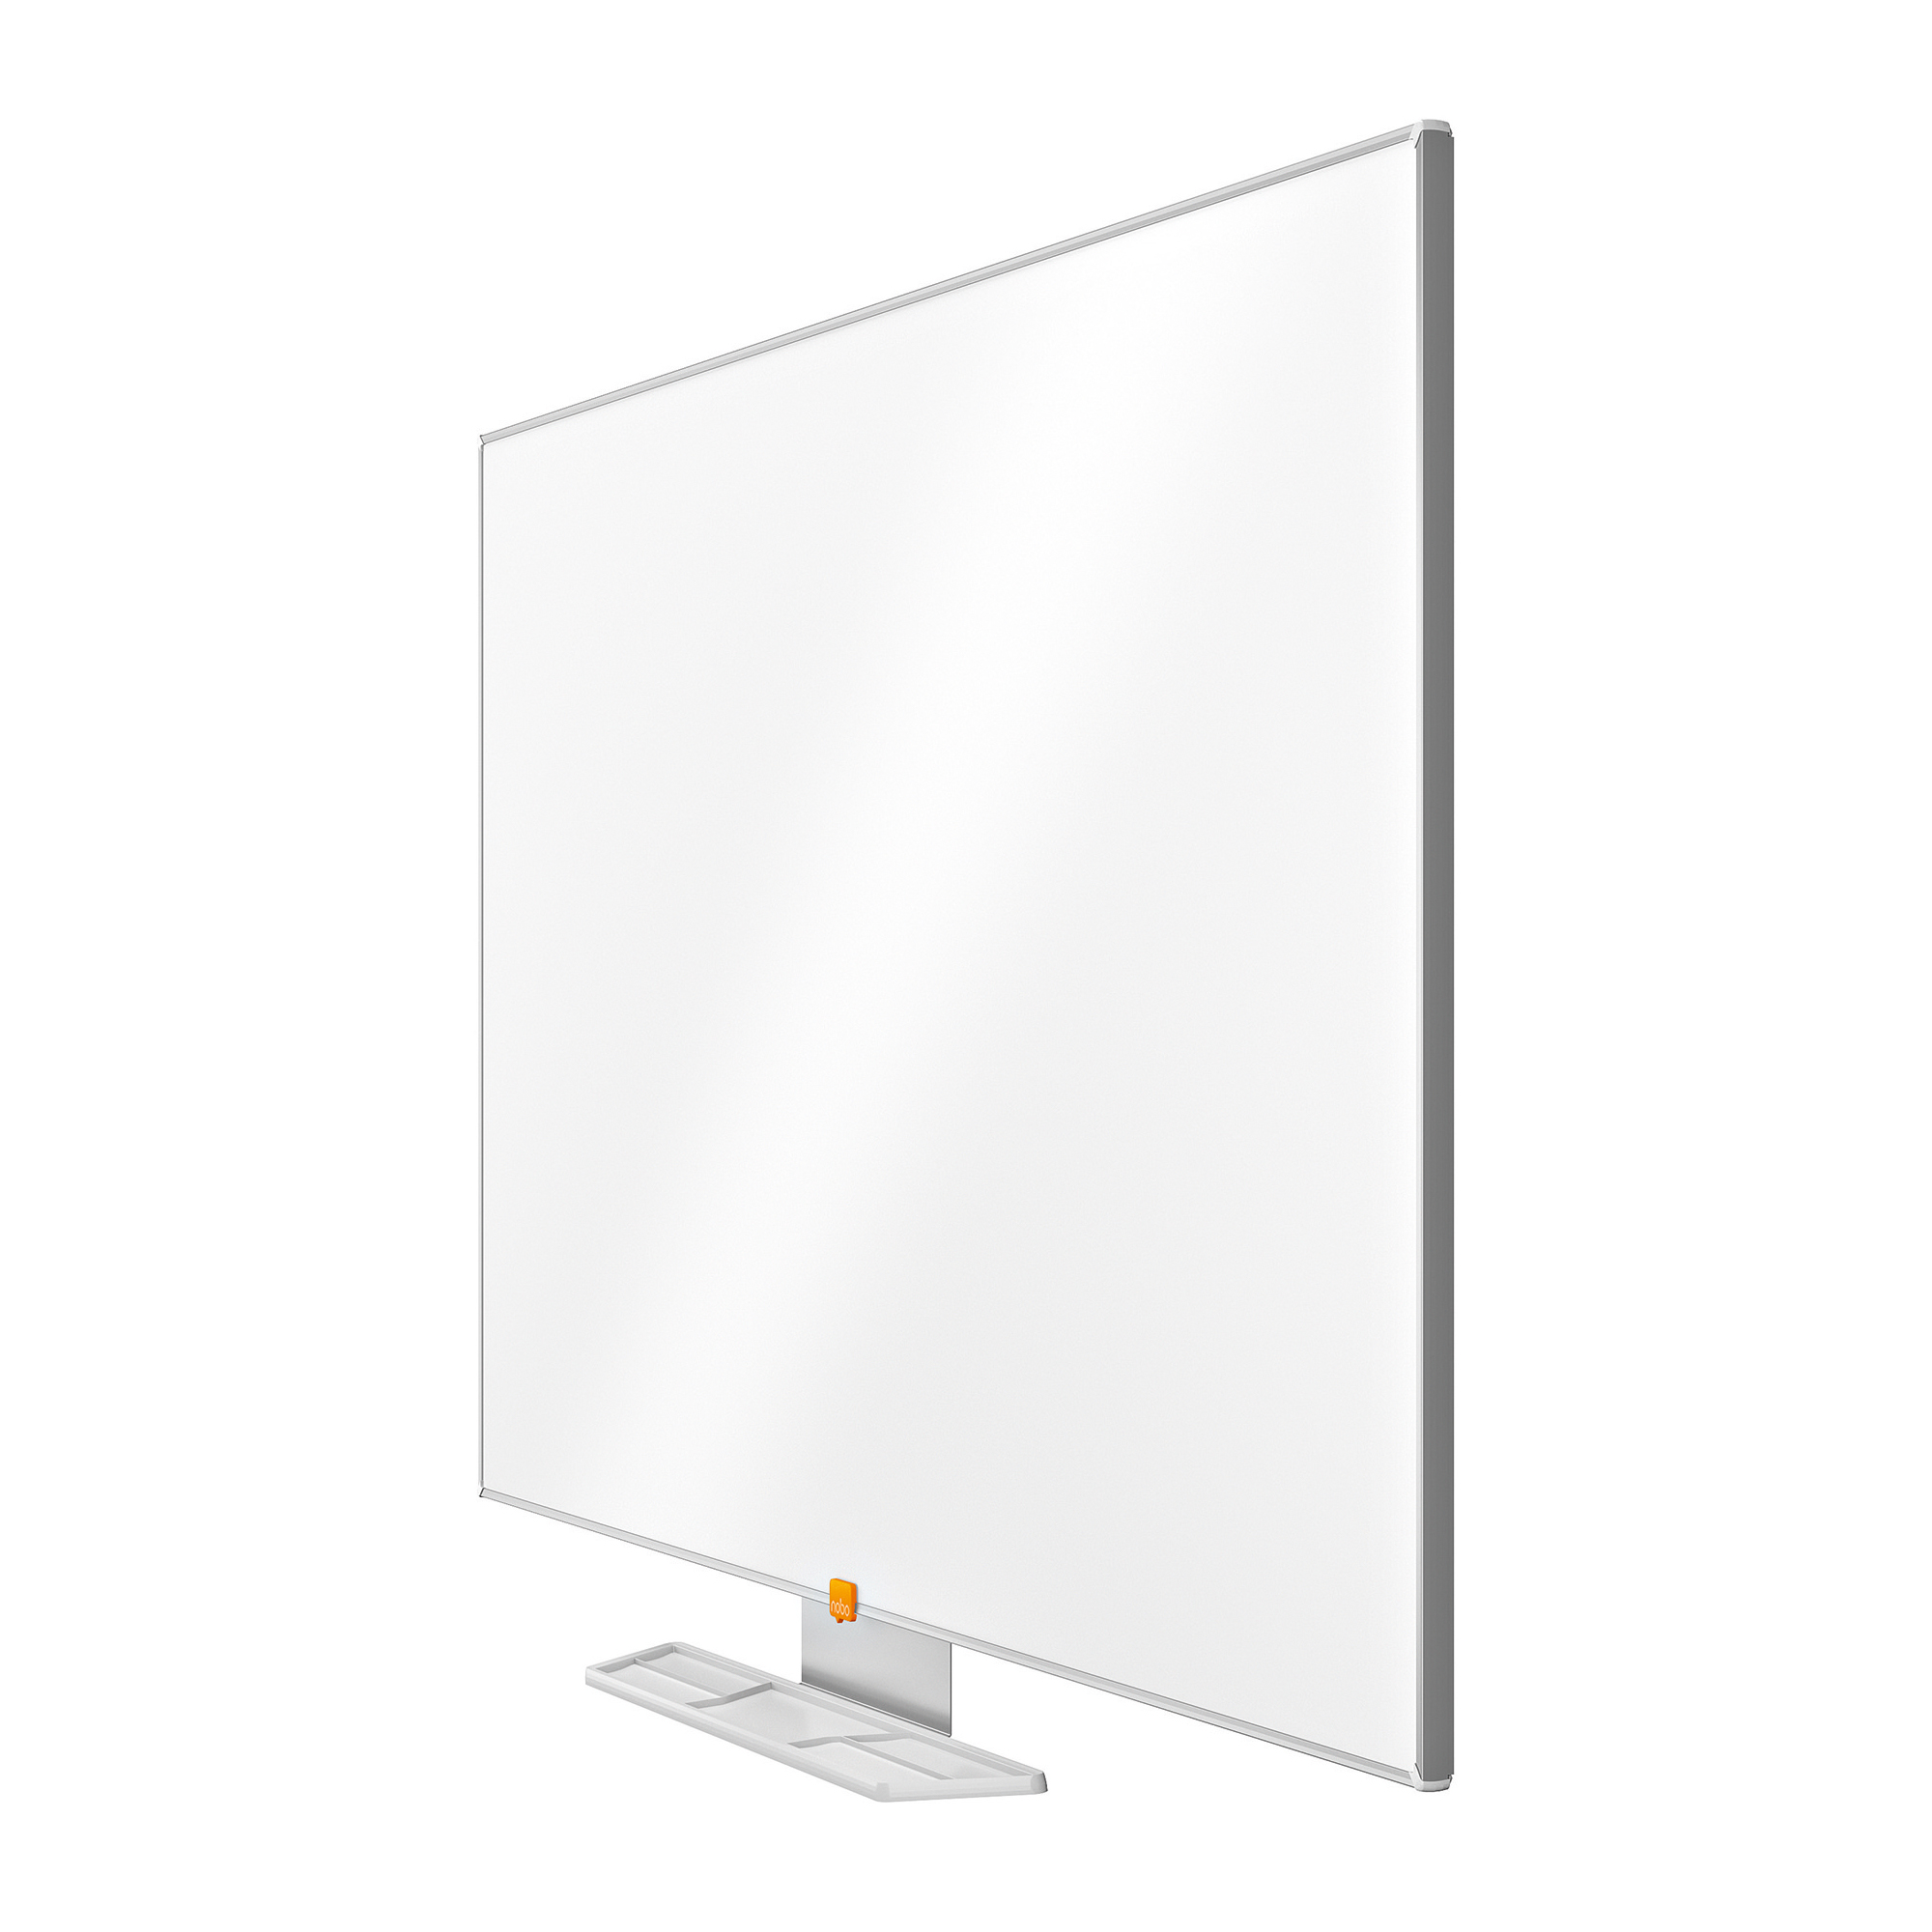 Nobo Whiteboard Widescreen 70in Nano Clean Magnetic 883x1561mm Ref 1905299 COMPETITION Apr-Jun 19